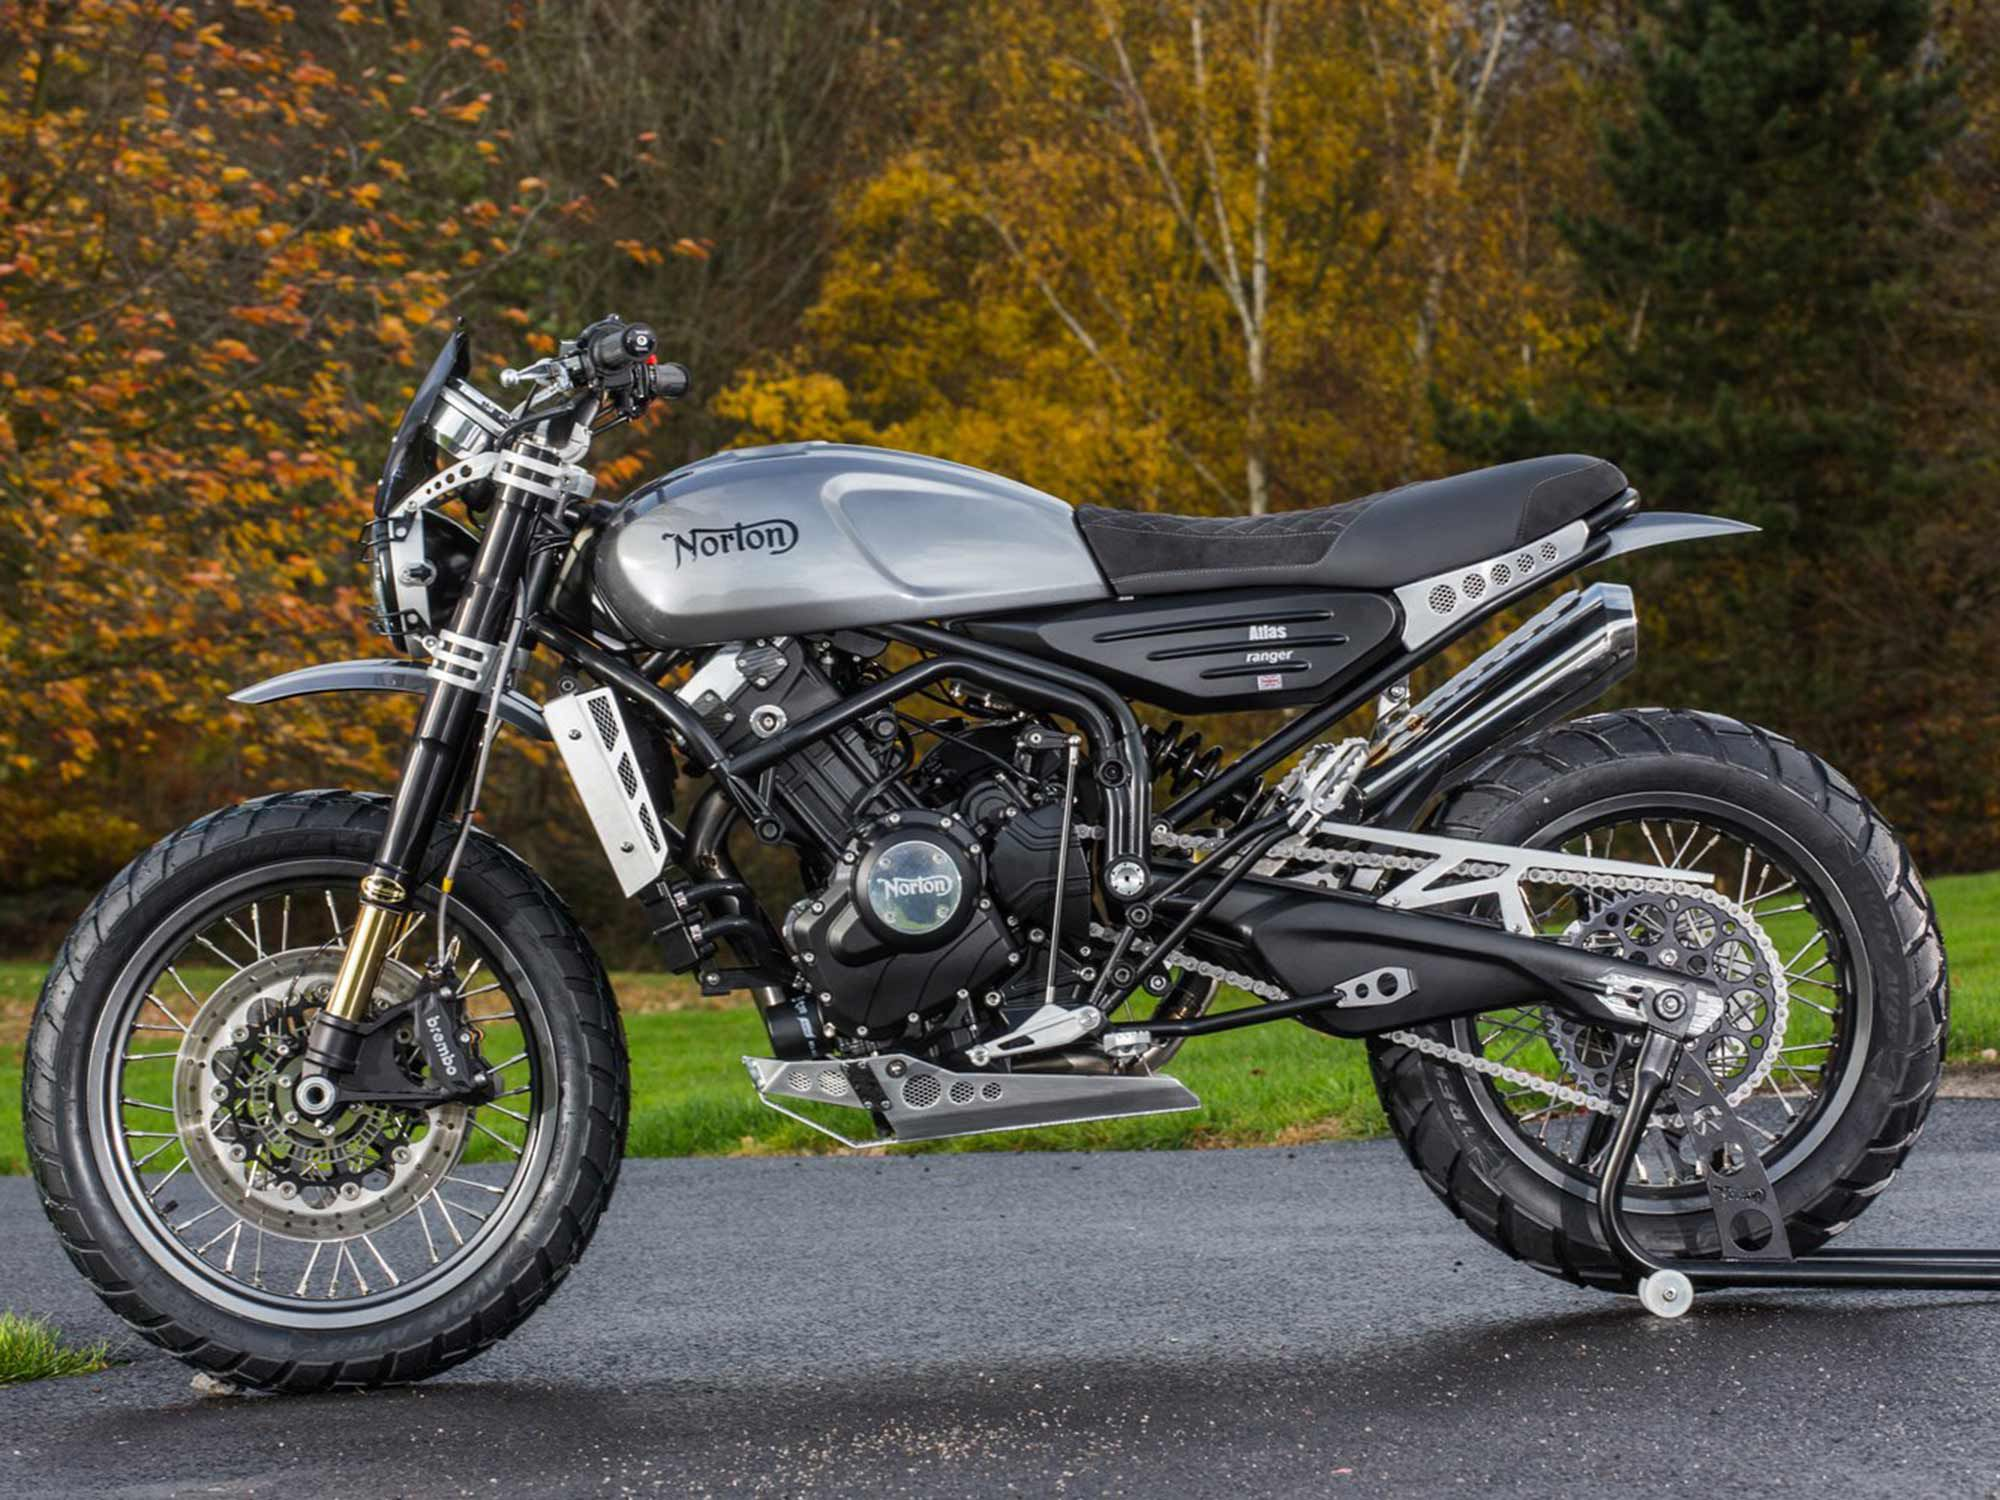 """Norton was purchased by TVS for 16 million pounds ($19.84 million); the Indian manufacturer vows to return Norton to """"its full glory in the international motorcycle landscape."""""""